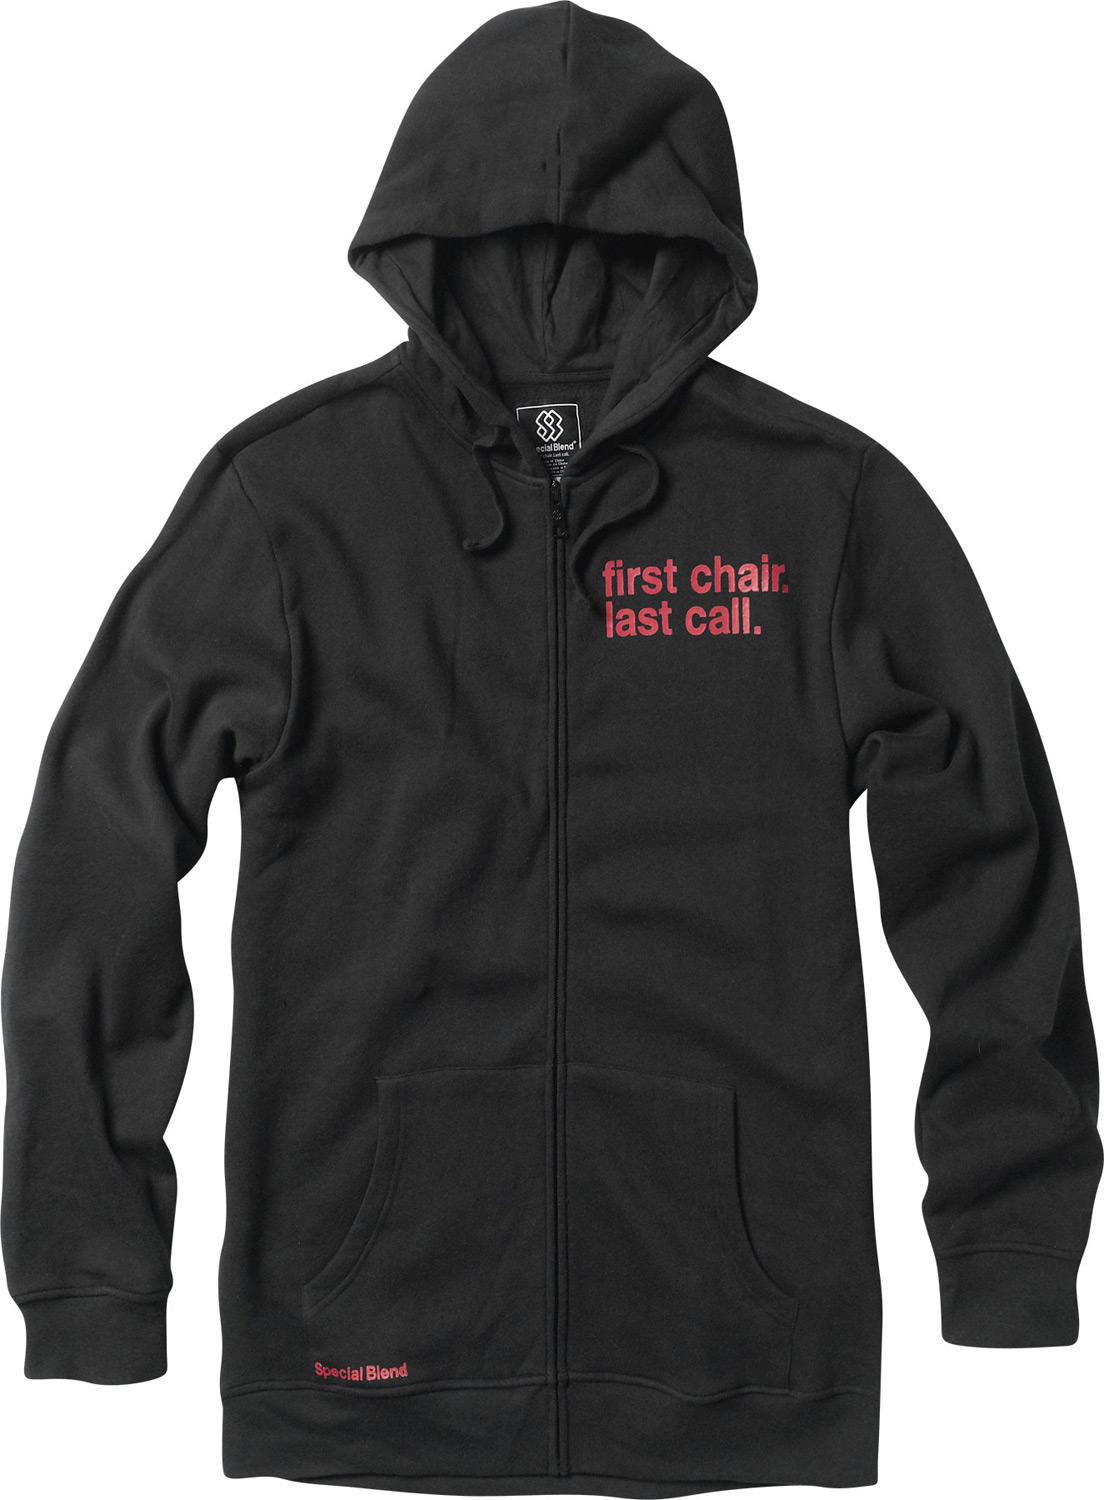 Special Blend First Chair Last Call Hoodie - $19.95